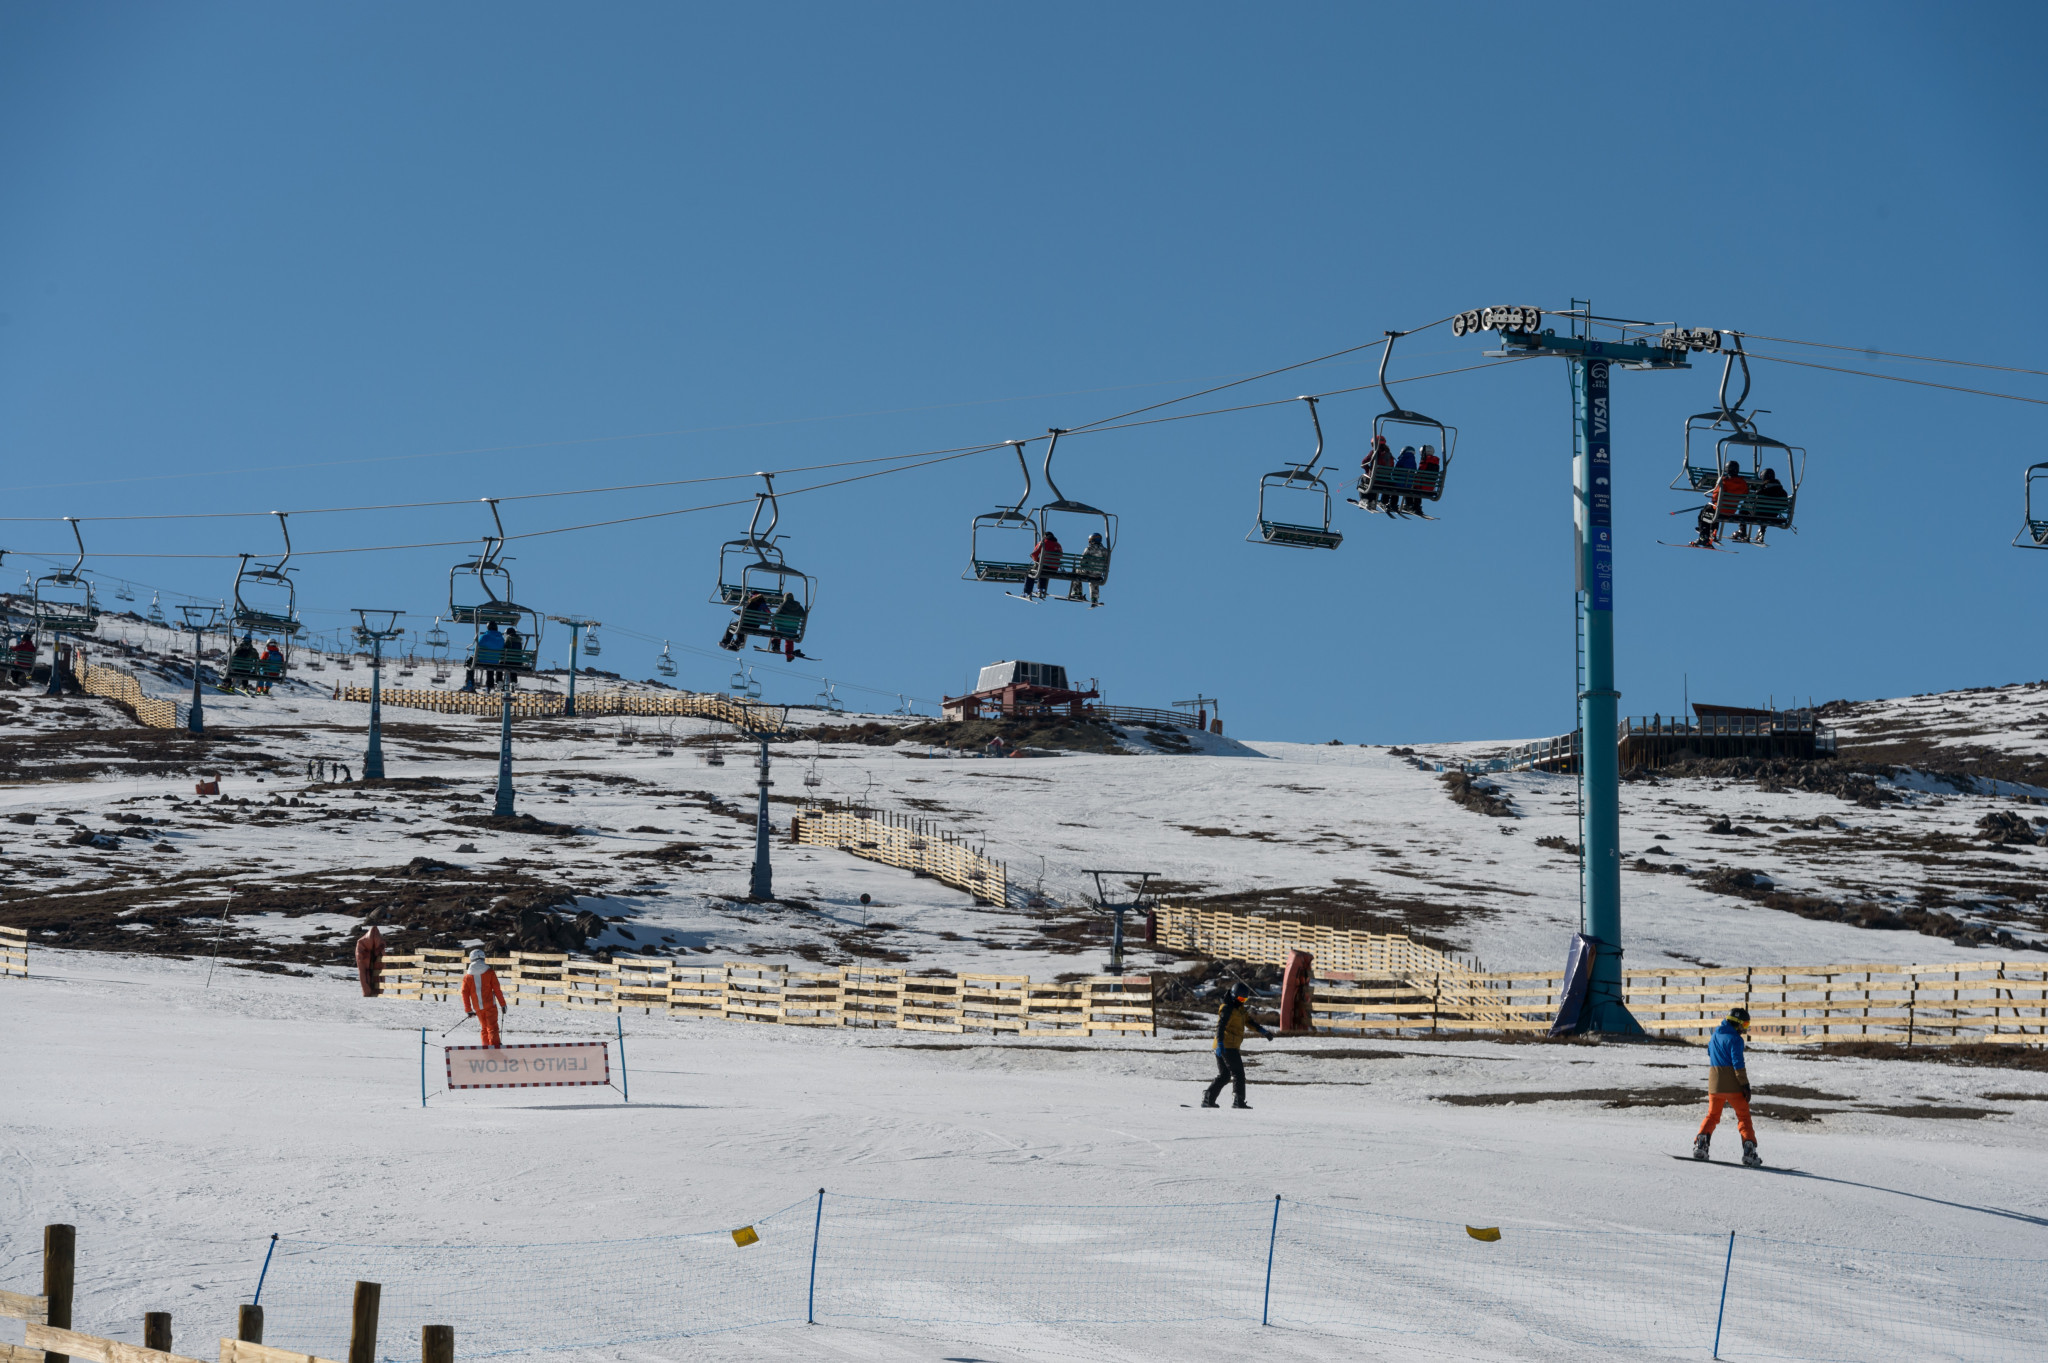 International Ski Federation hold fourth development camp in Chile